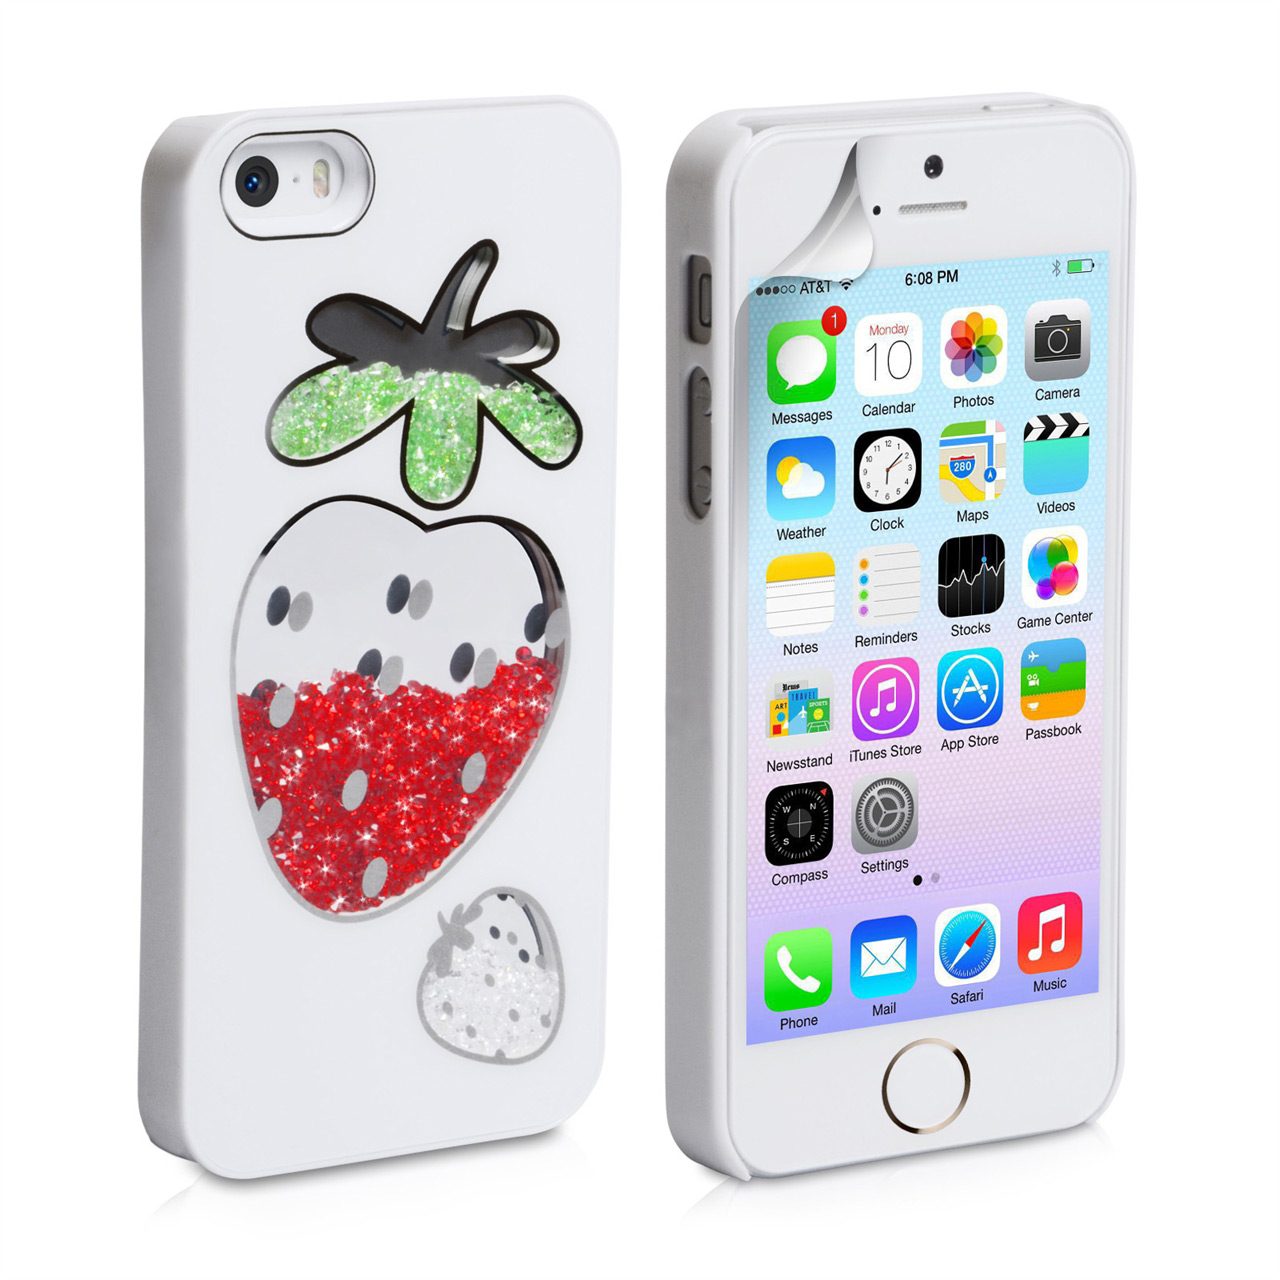 YouSave Accessories iPhone 5S Strawberry Bling Hard Case - White